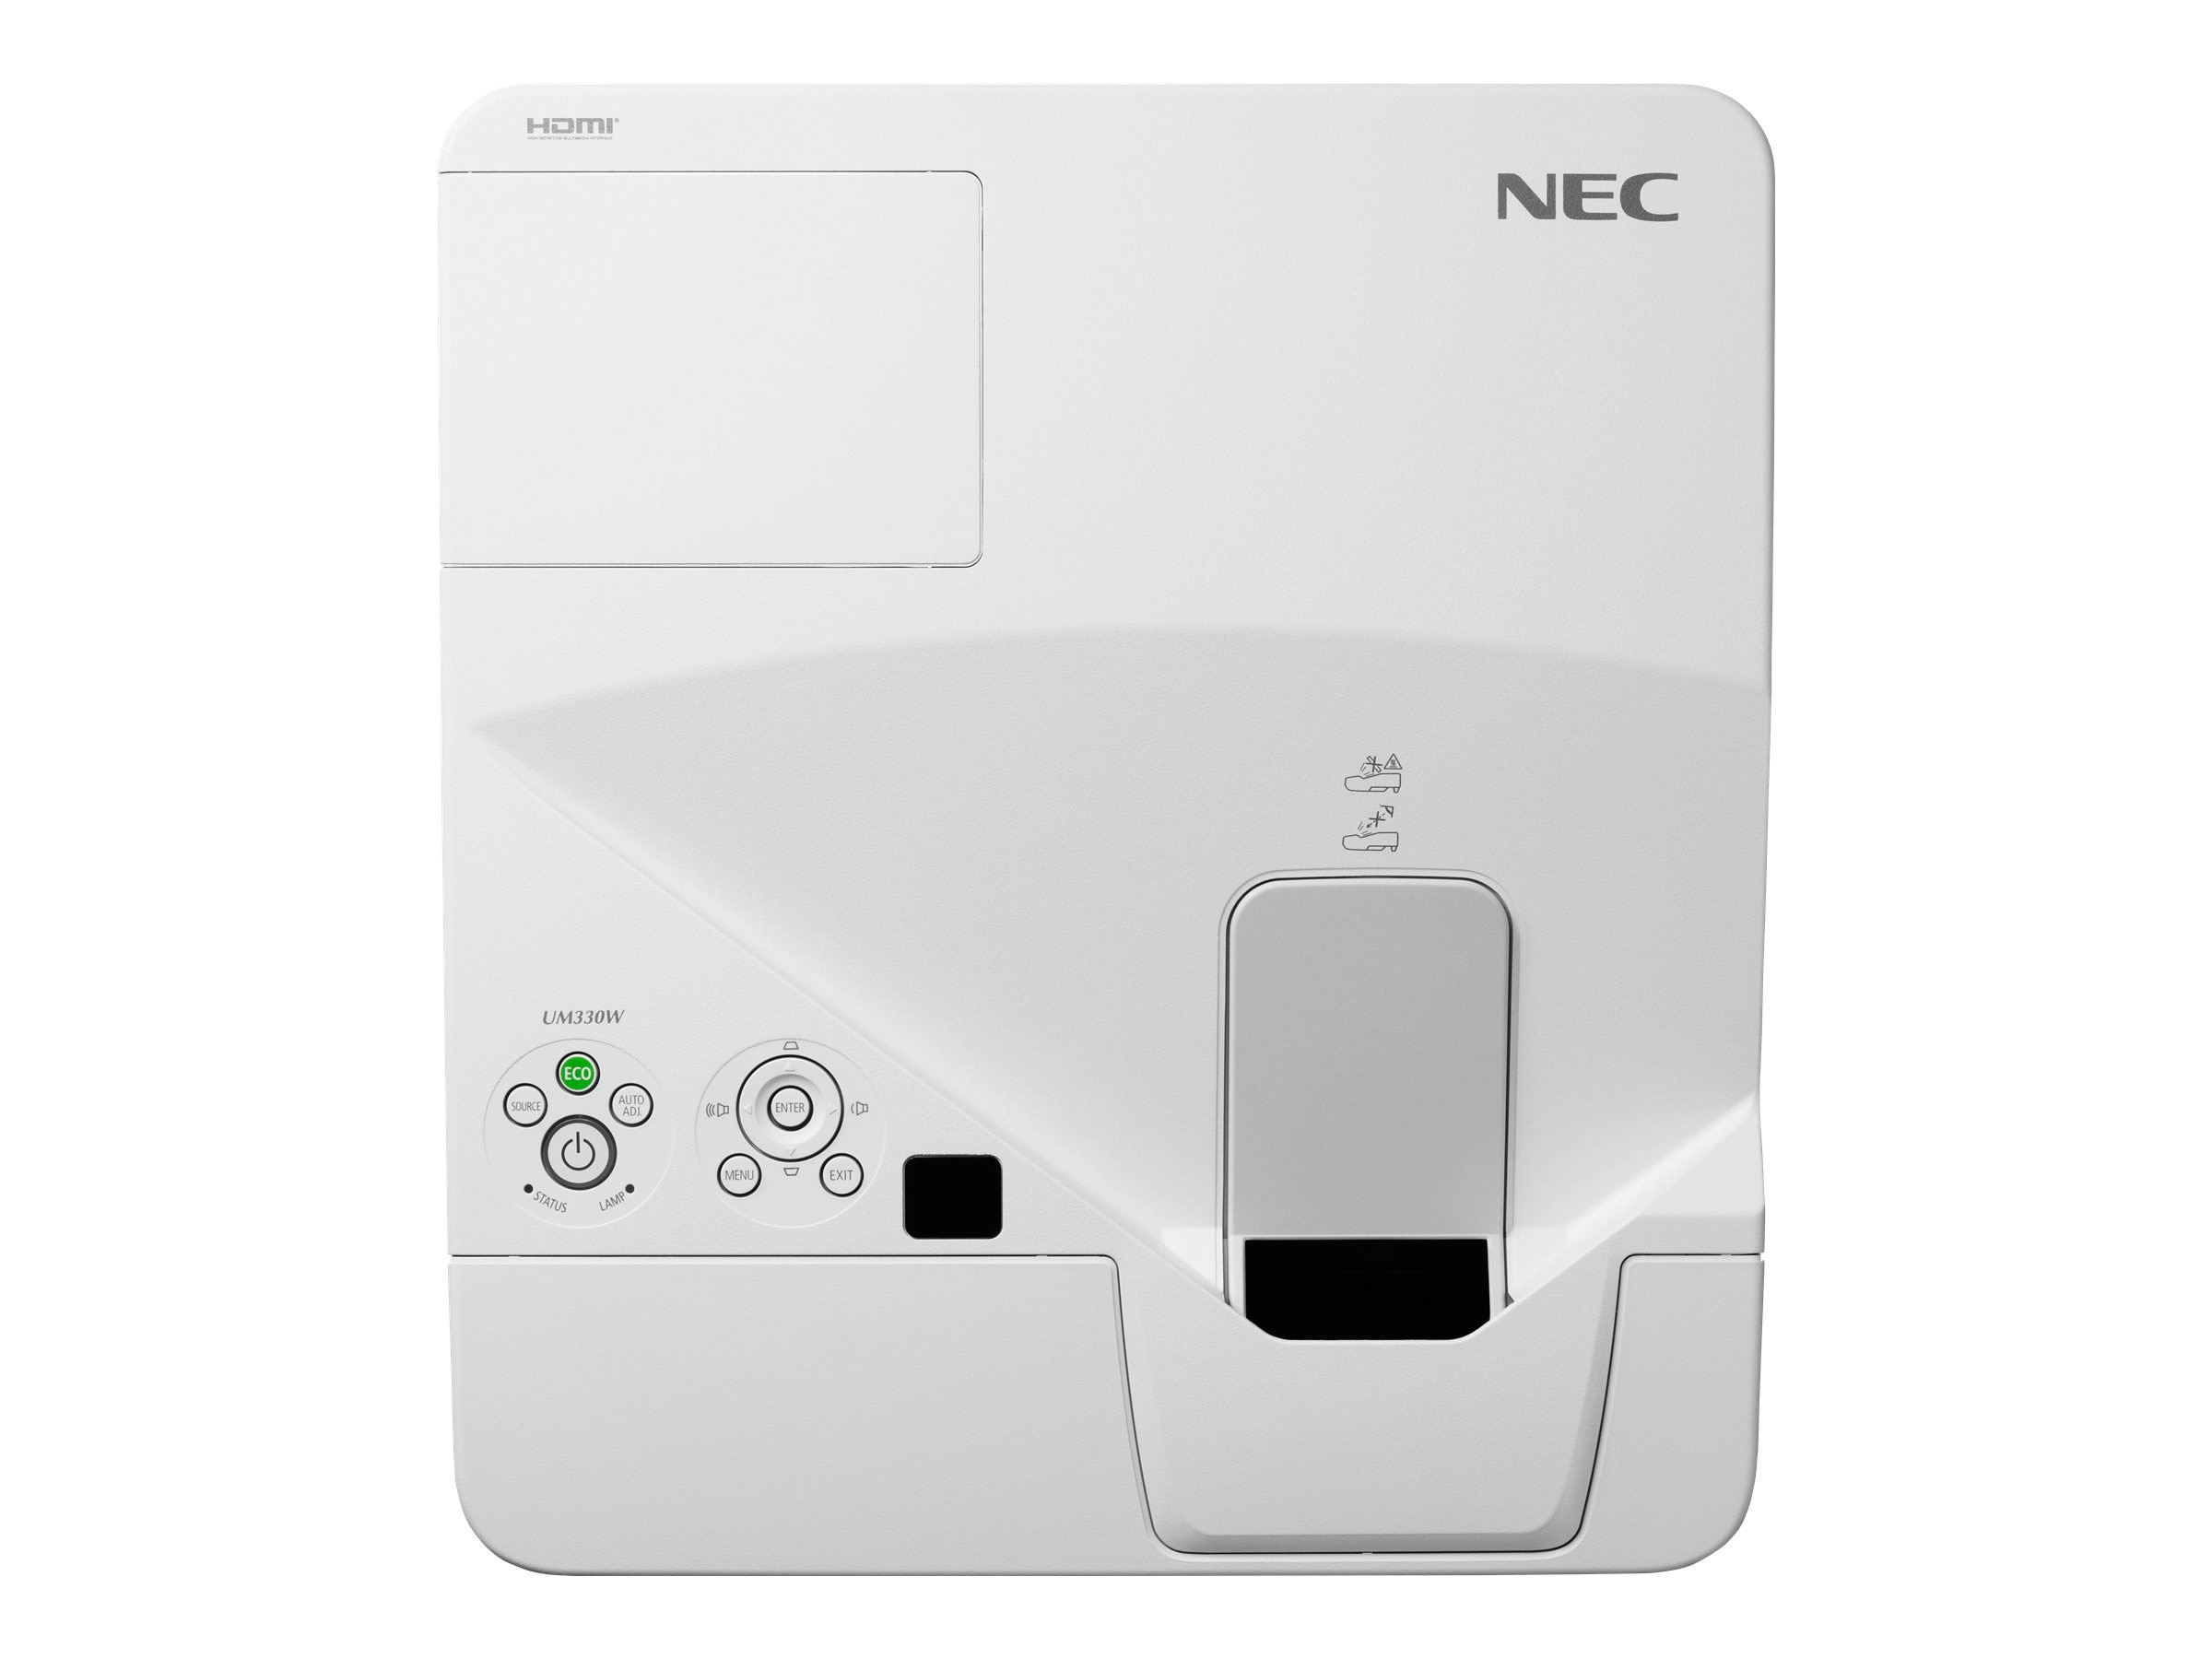 NEC UM330Wi-WK1 WXGA LCD Projector with Wall Mount, 3300 Lumens, White, NP-UM330Wi-WK1